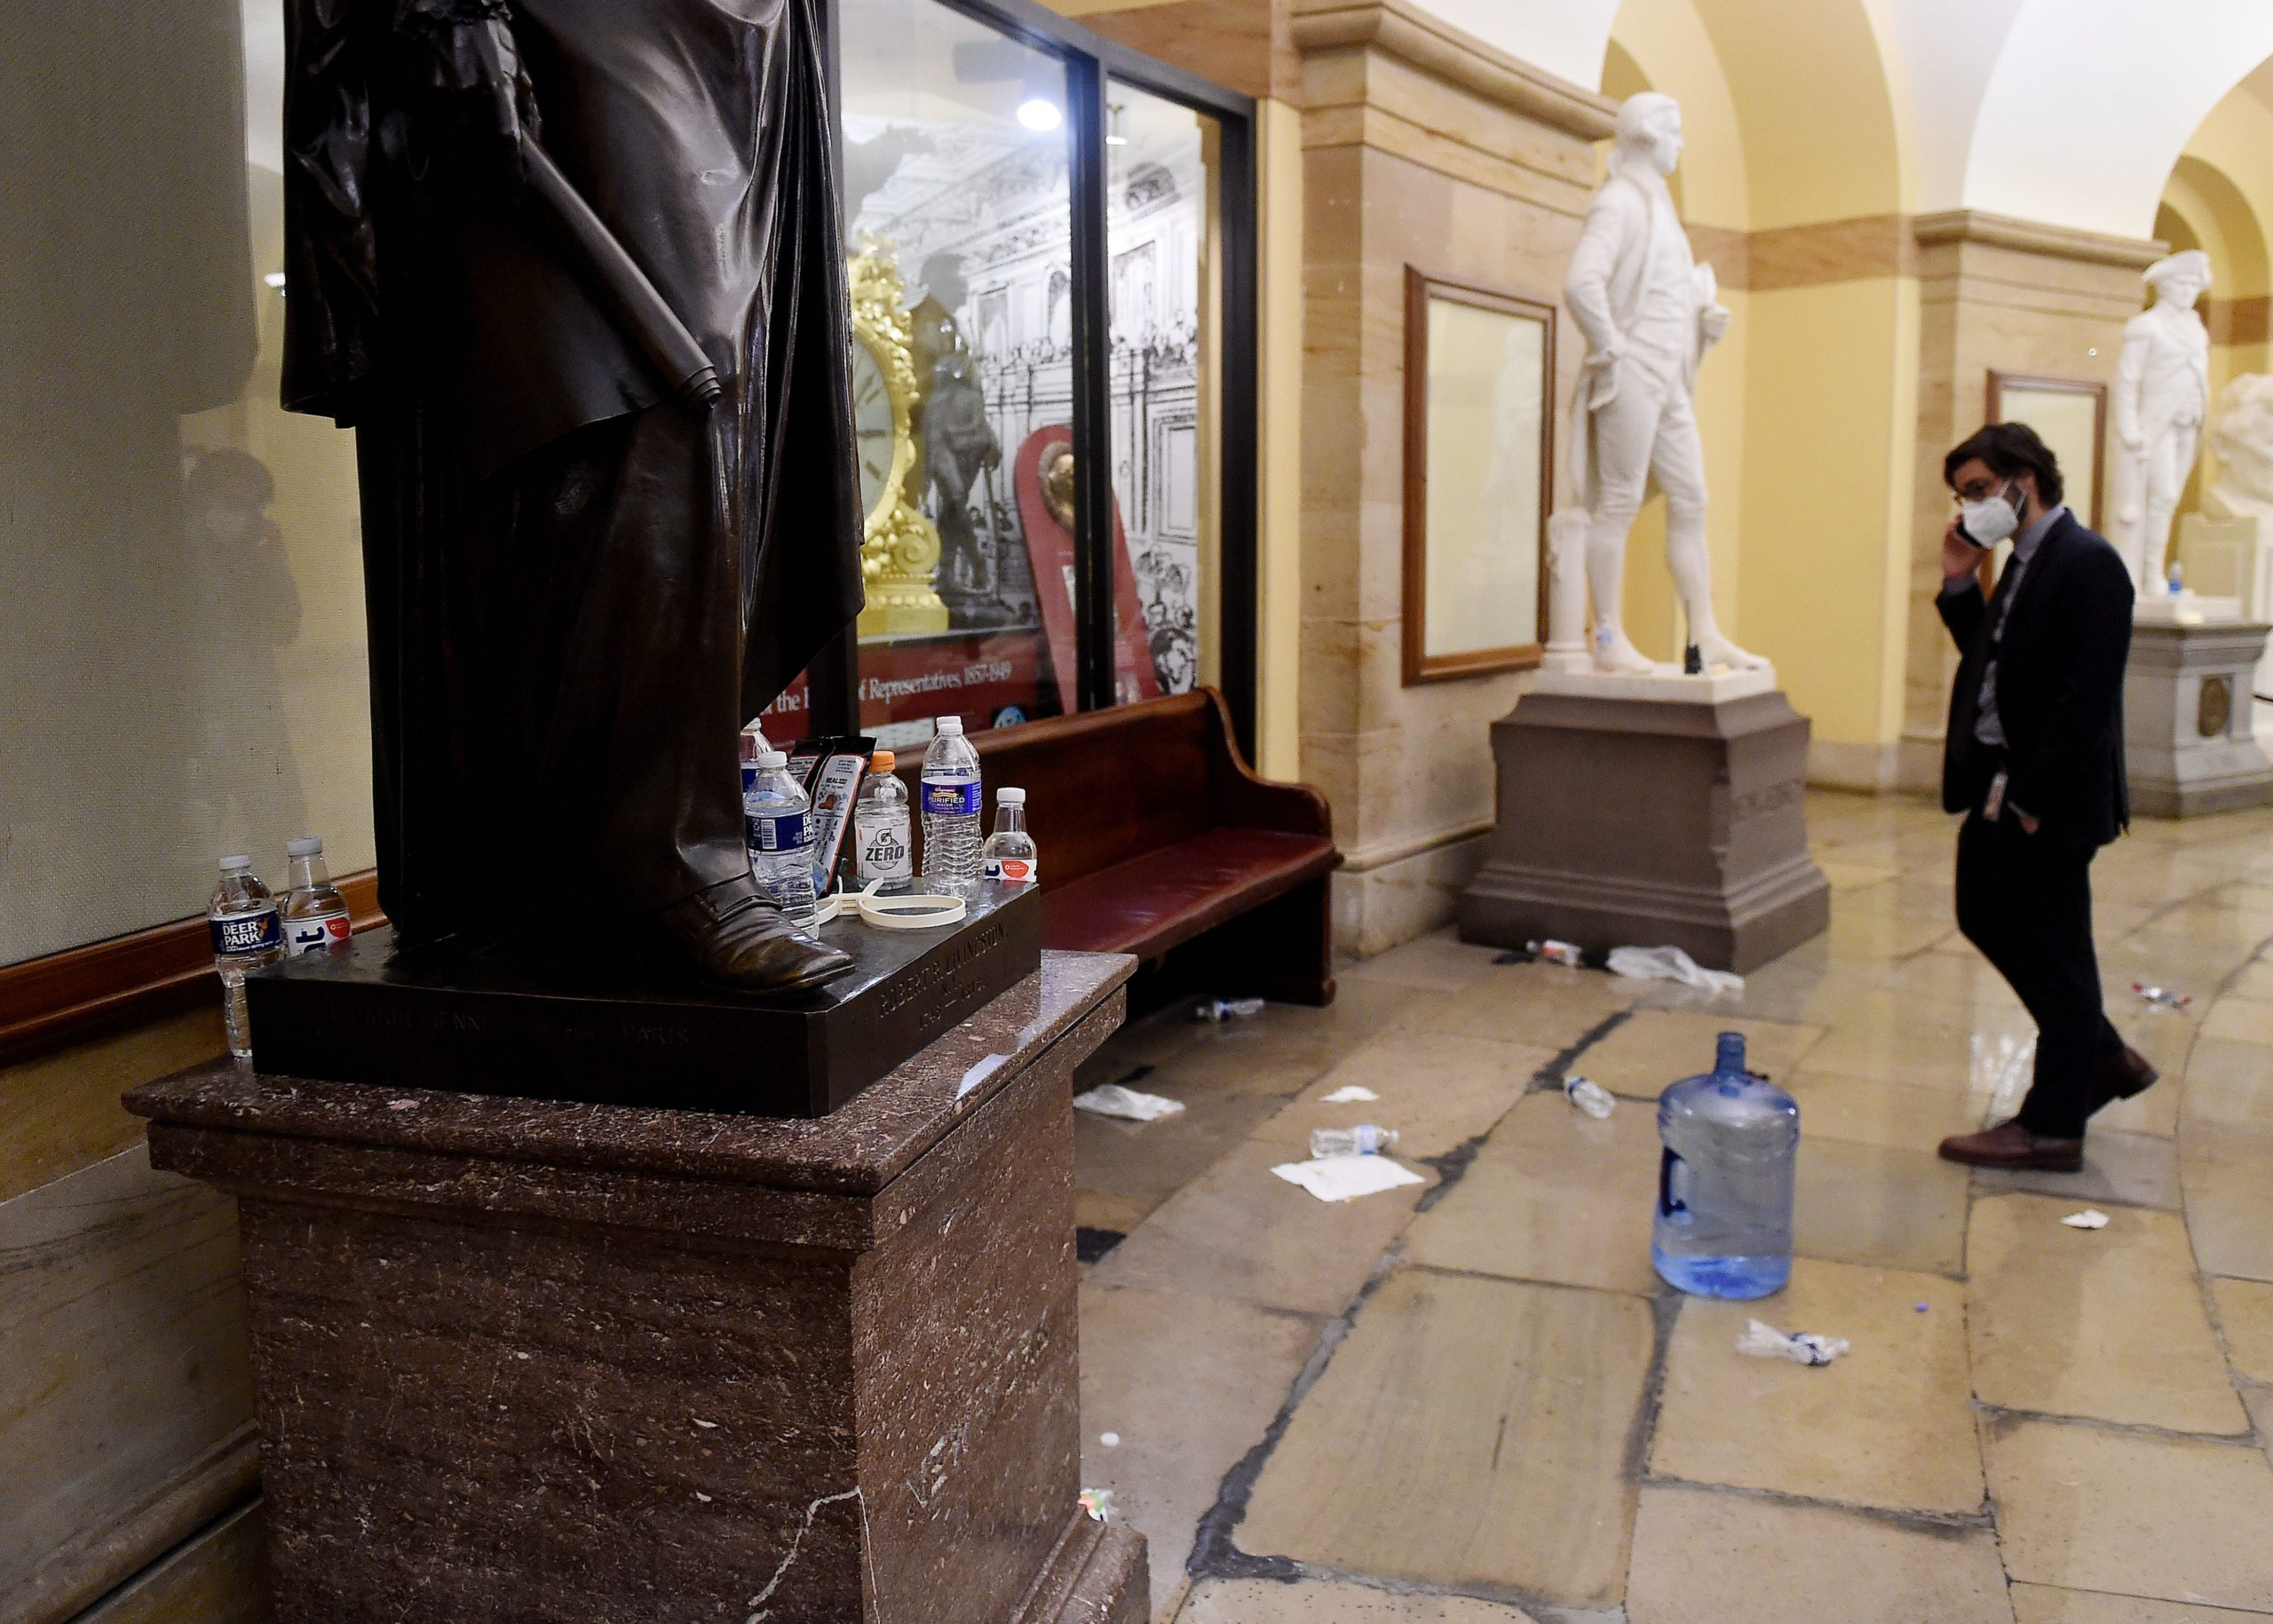 Damage is seen inside the US Capitol building early on January 7, 2021 in Washington, DC, after supporters of US President Donald Trump breeched security and entered the building during a session of Congress. - Donald Trump's supporters stormed a session of Congress held today, January 6, to certify Joe Biden's election win, triggering unprecedented chaos and violence at the heart of American democracy and accusations the president was attempting a coup. (Photo by Olivier Douliery/AFP via Getty Images)